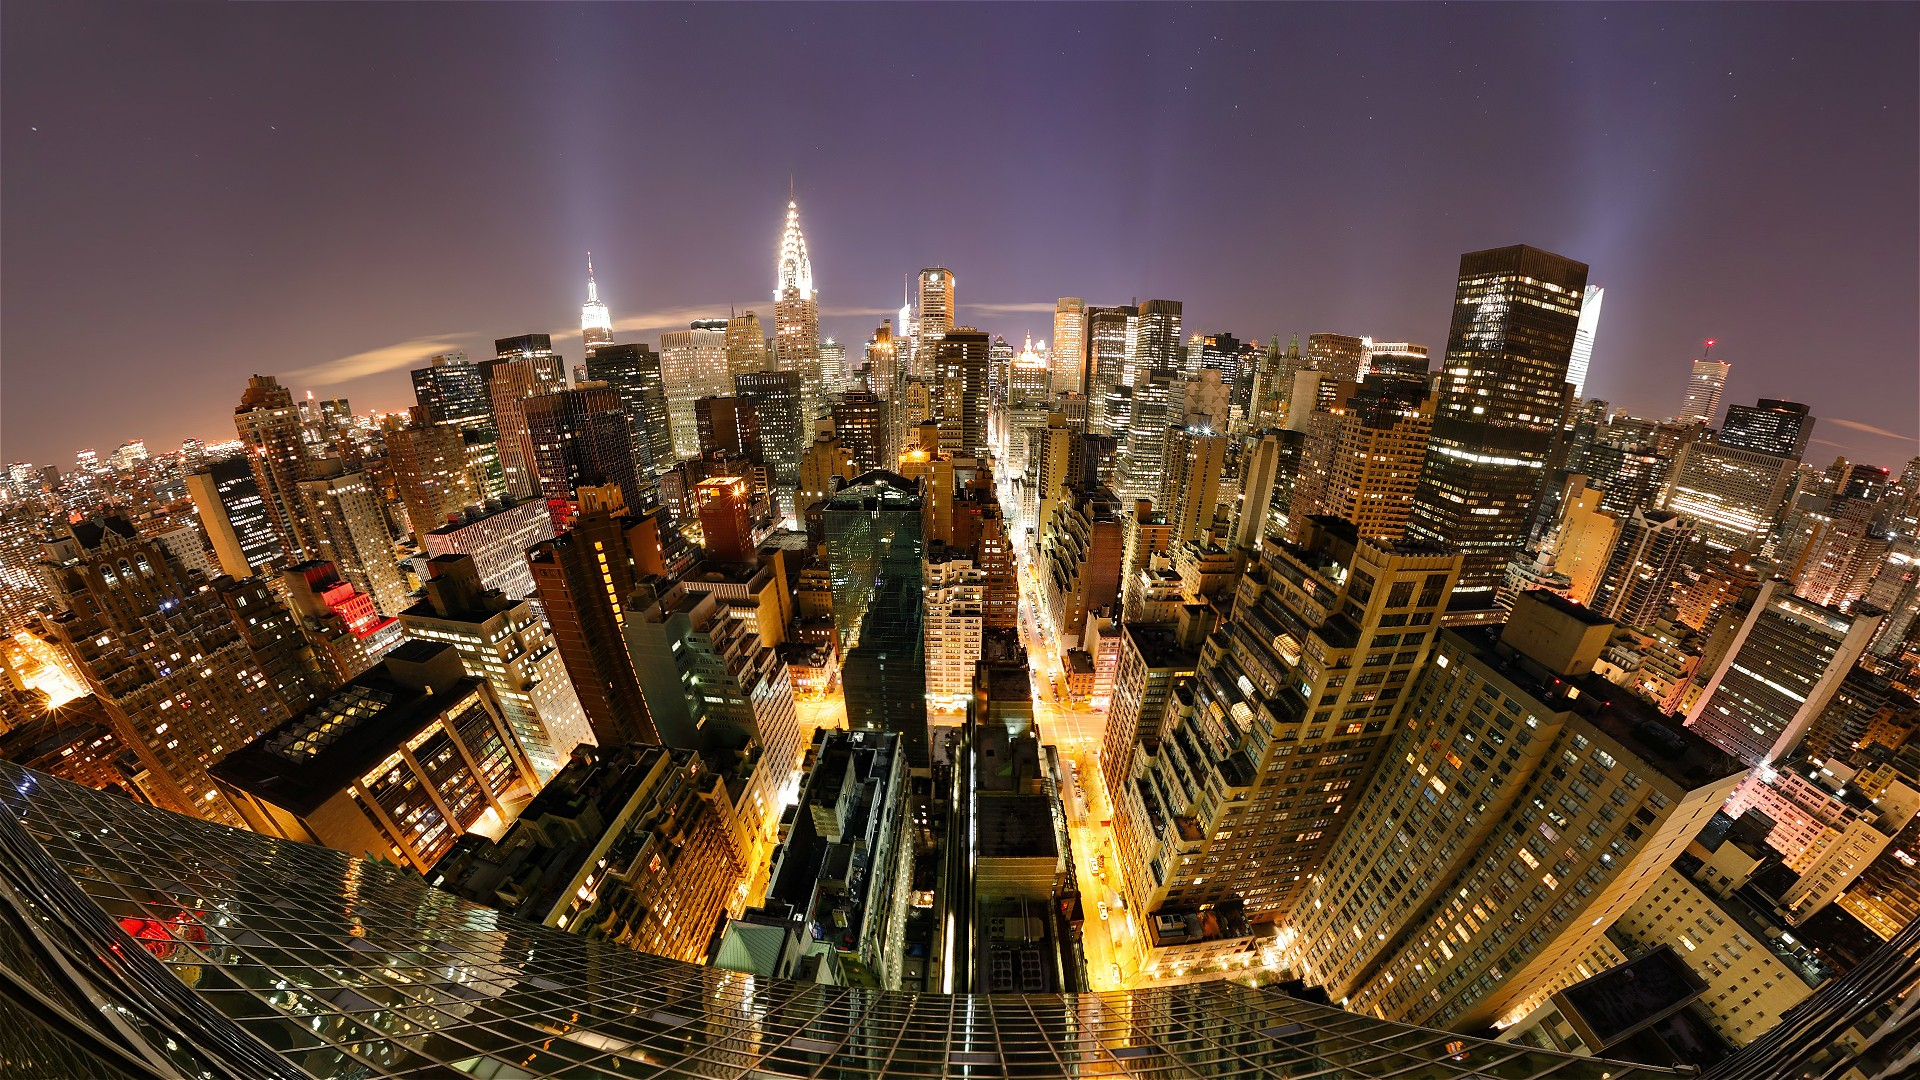 New York City Desktop Wallpaper Widescreen 1920x1080